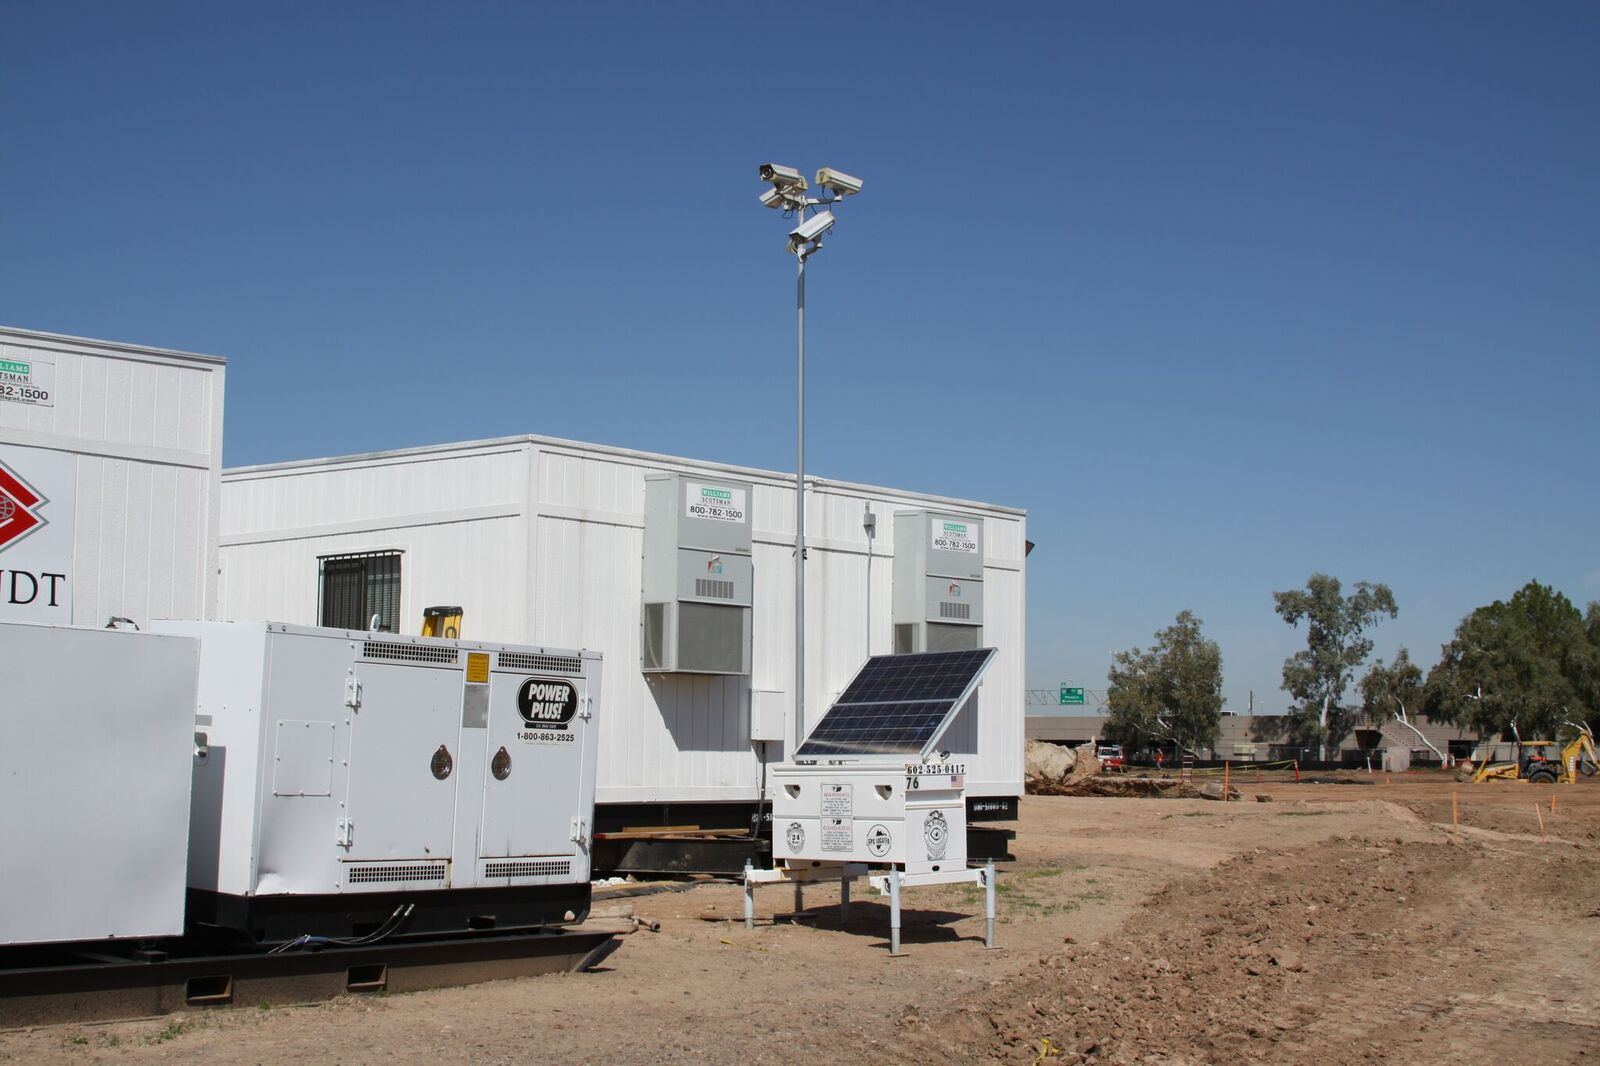 Eyesites mobile surveillance setup on a construction site